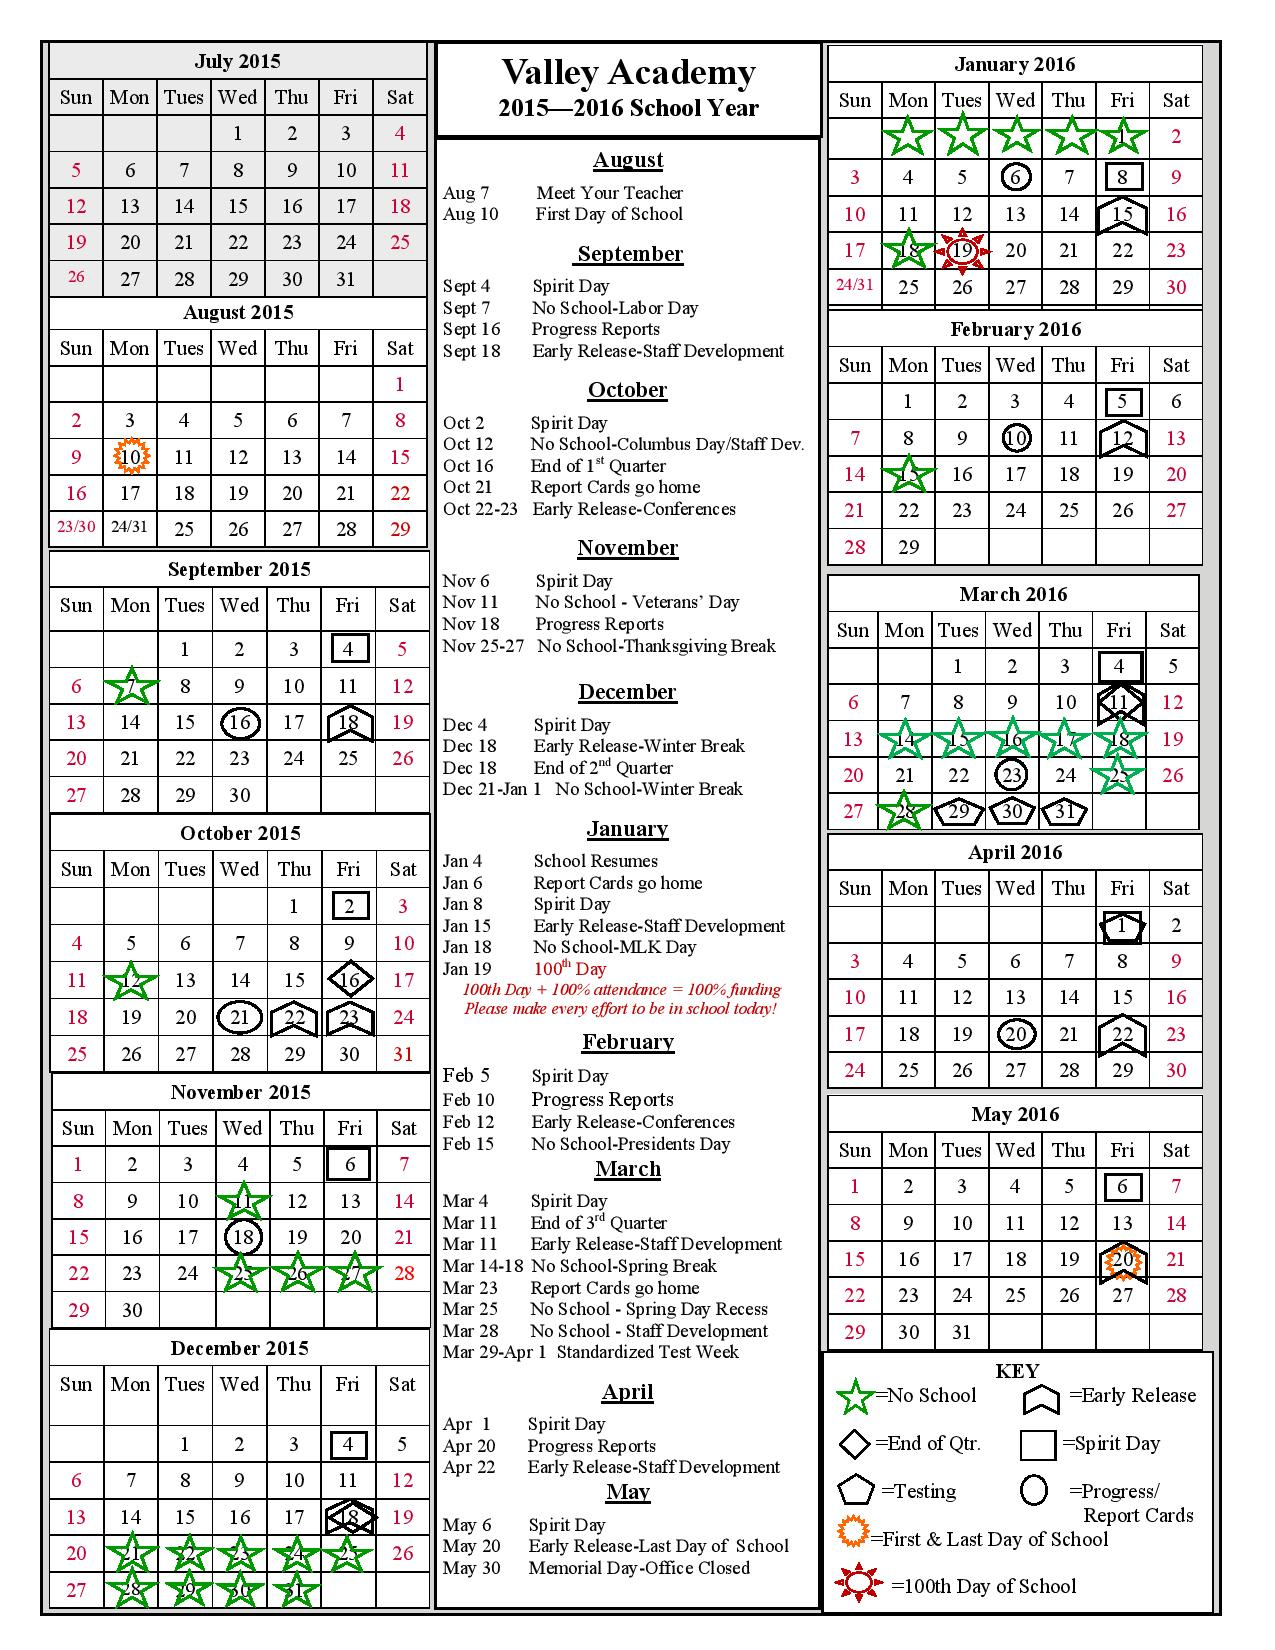 Valley Academy 2014-15 School Year Calendar